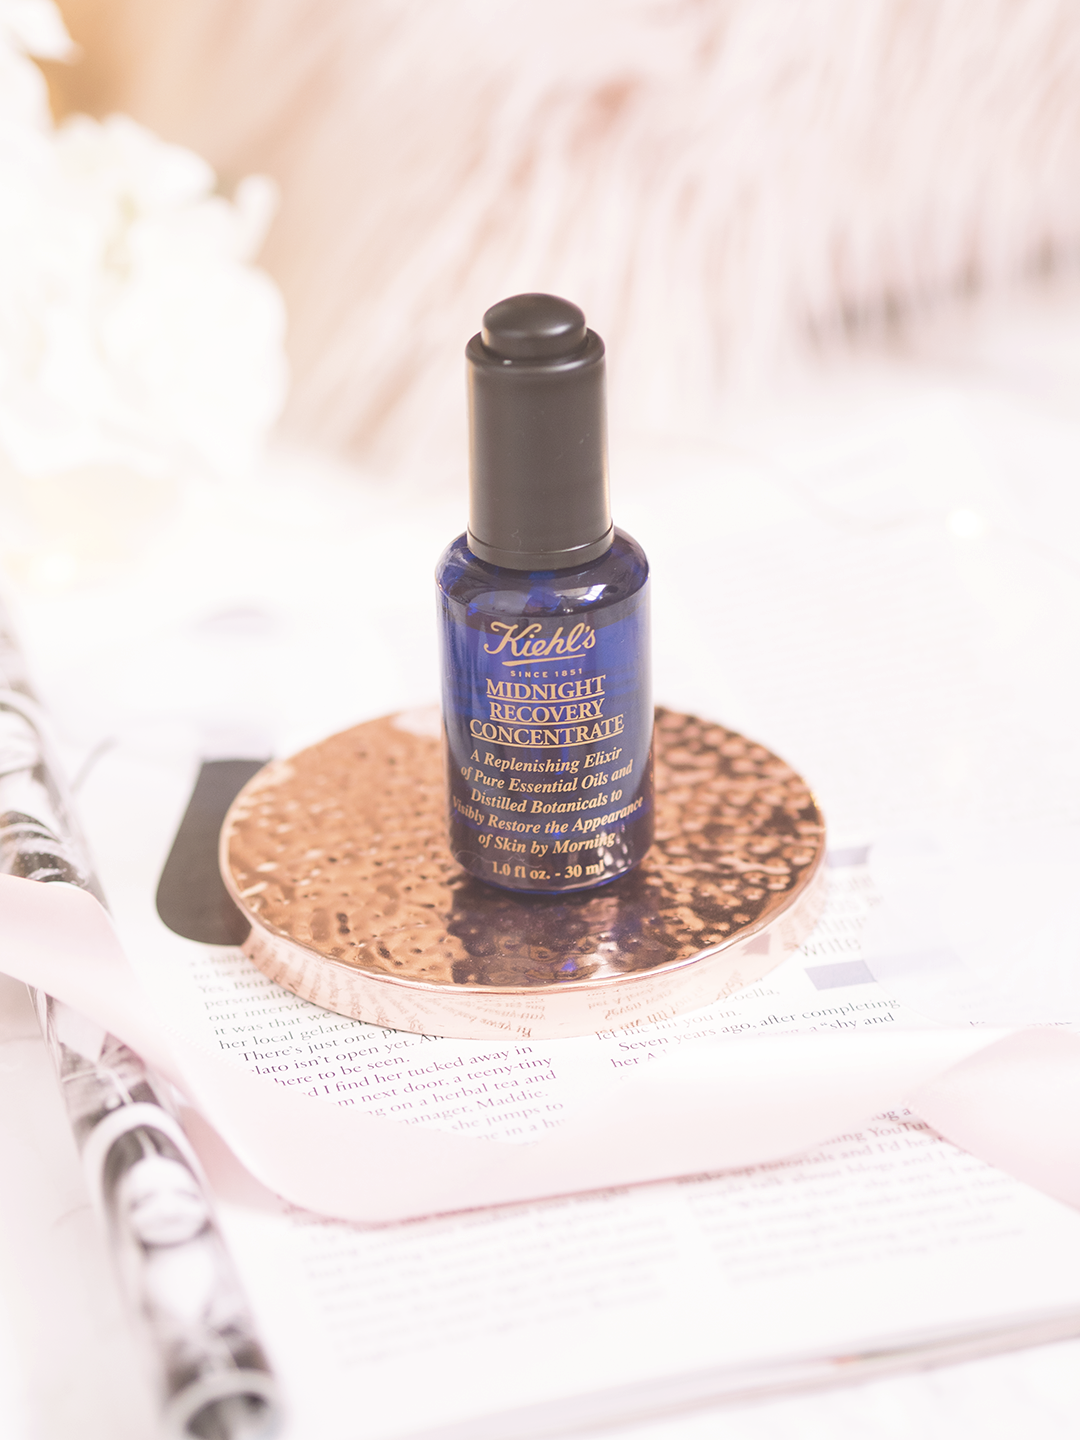 Why You Need a Facial Oil Kiehl's Midnight Recovery Concentrate